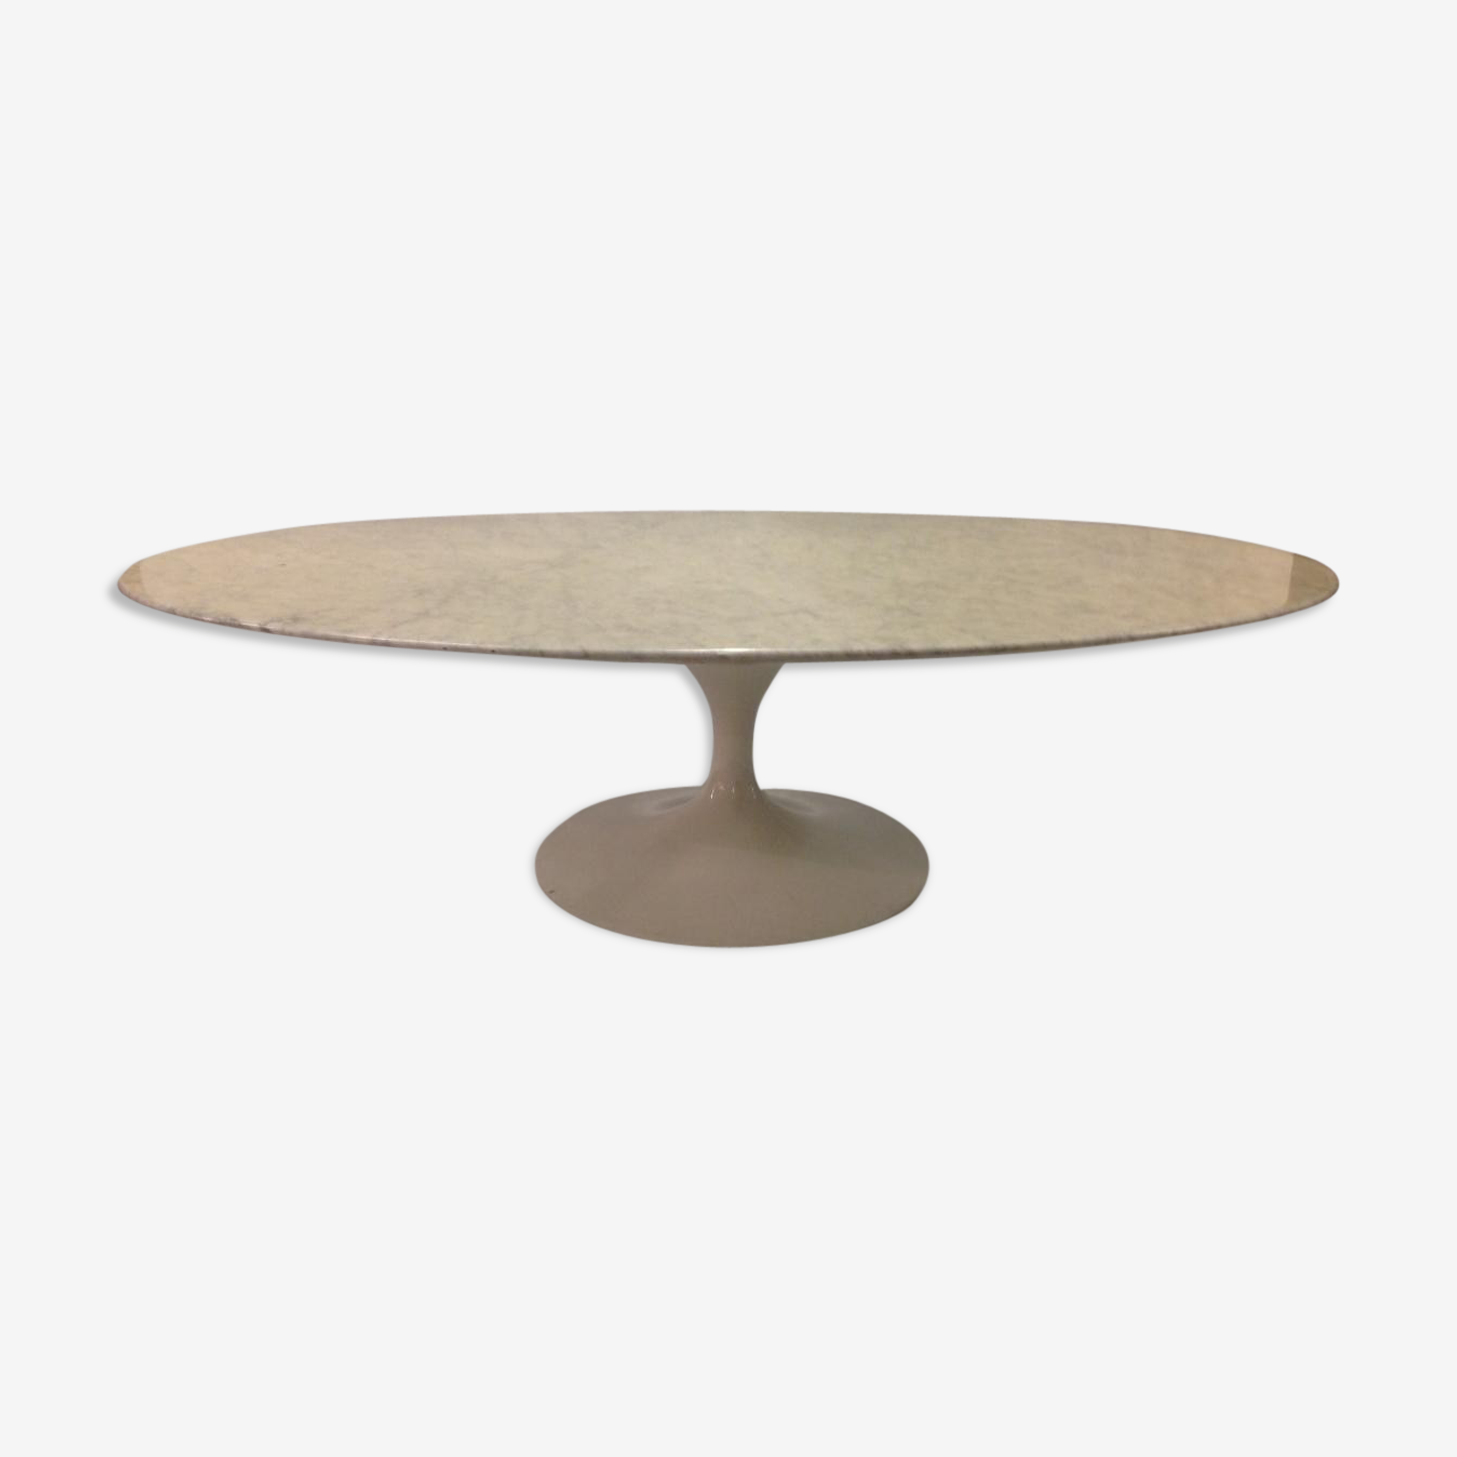 Table basse ovale Eero Saarinen Knoll